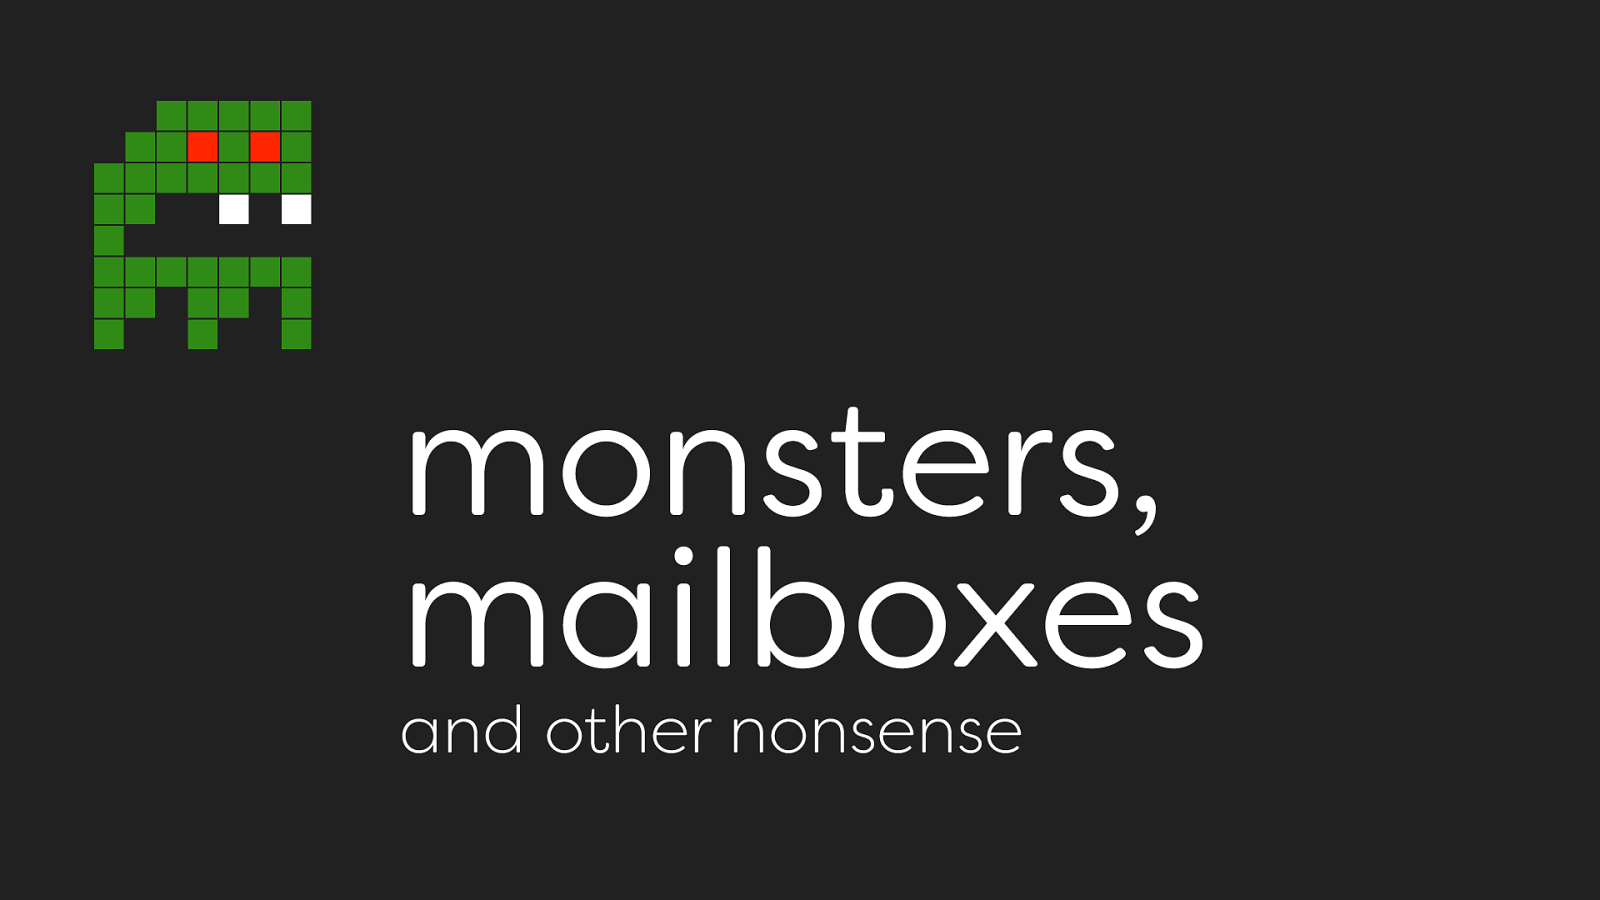 Monsters, mailboxes and other nonsense